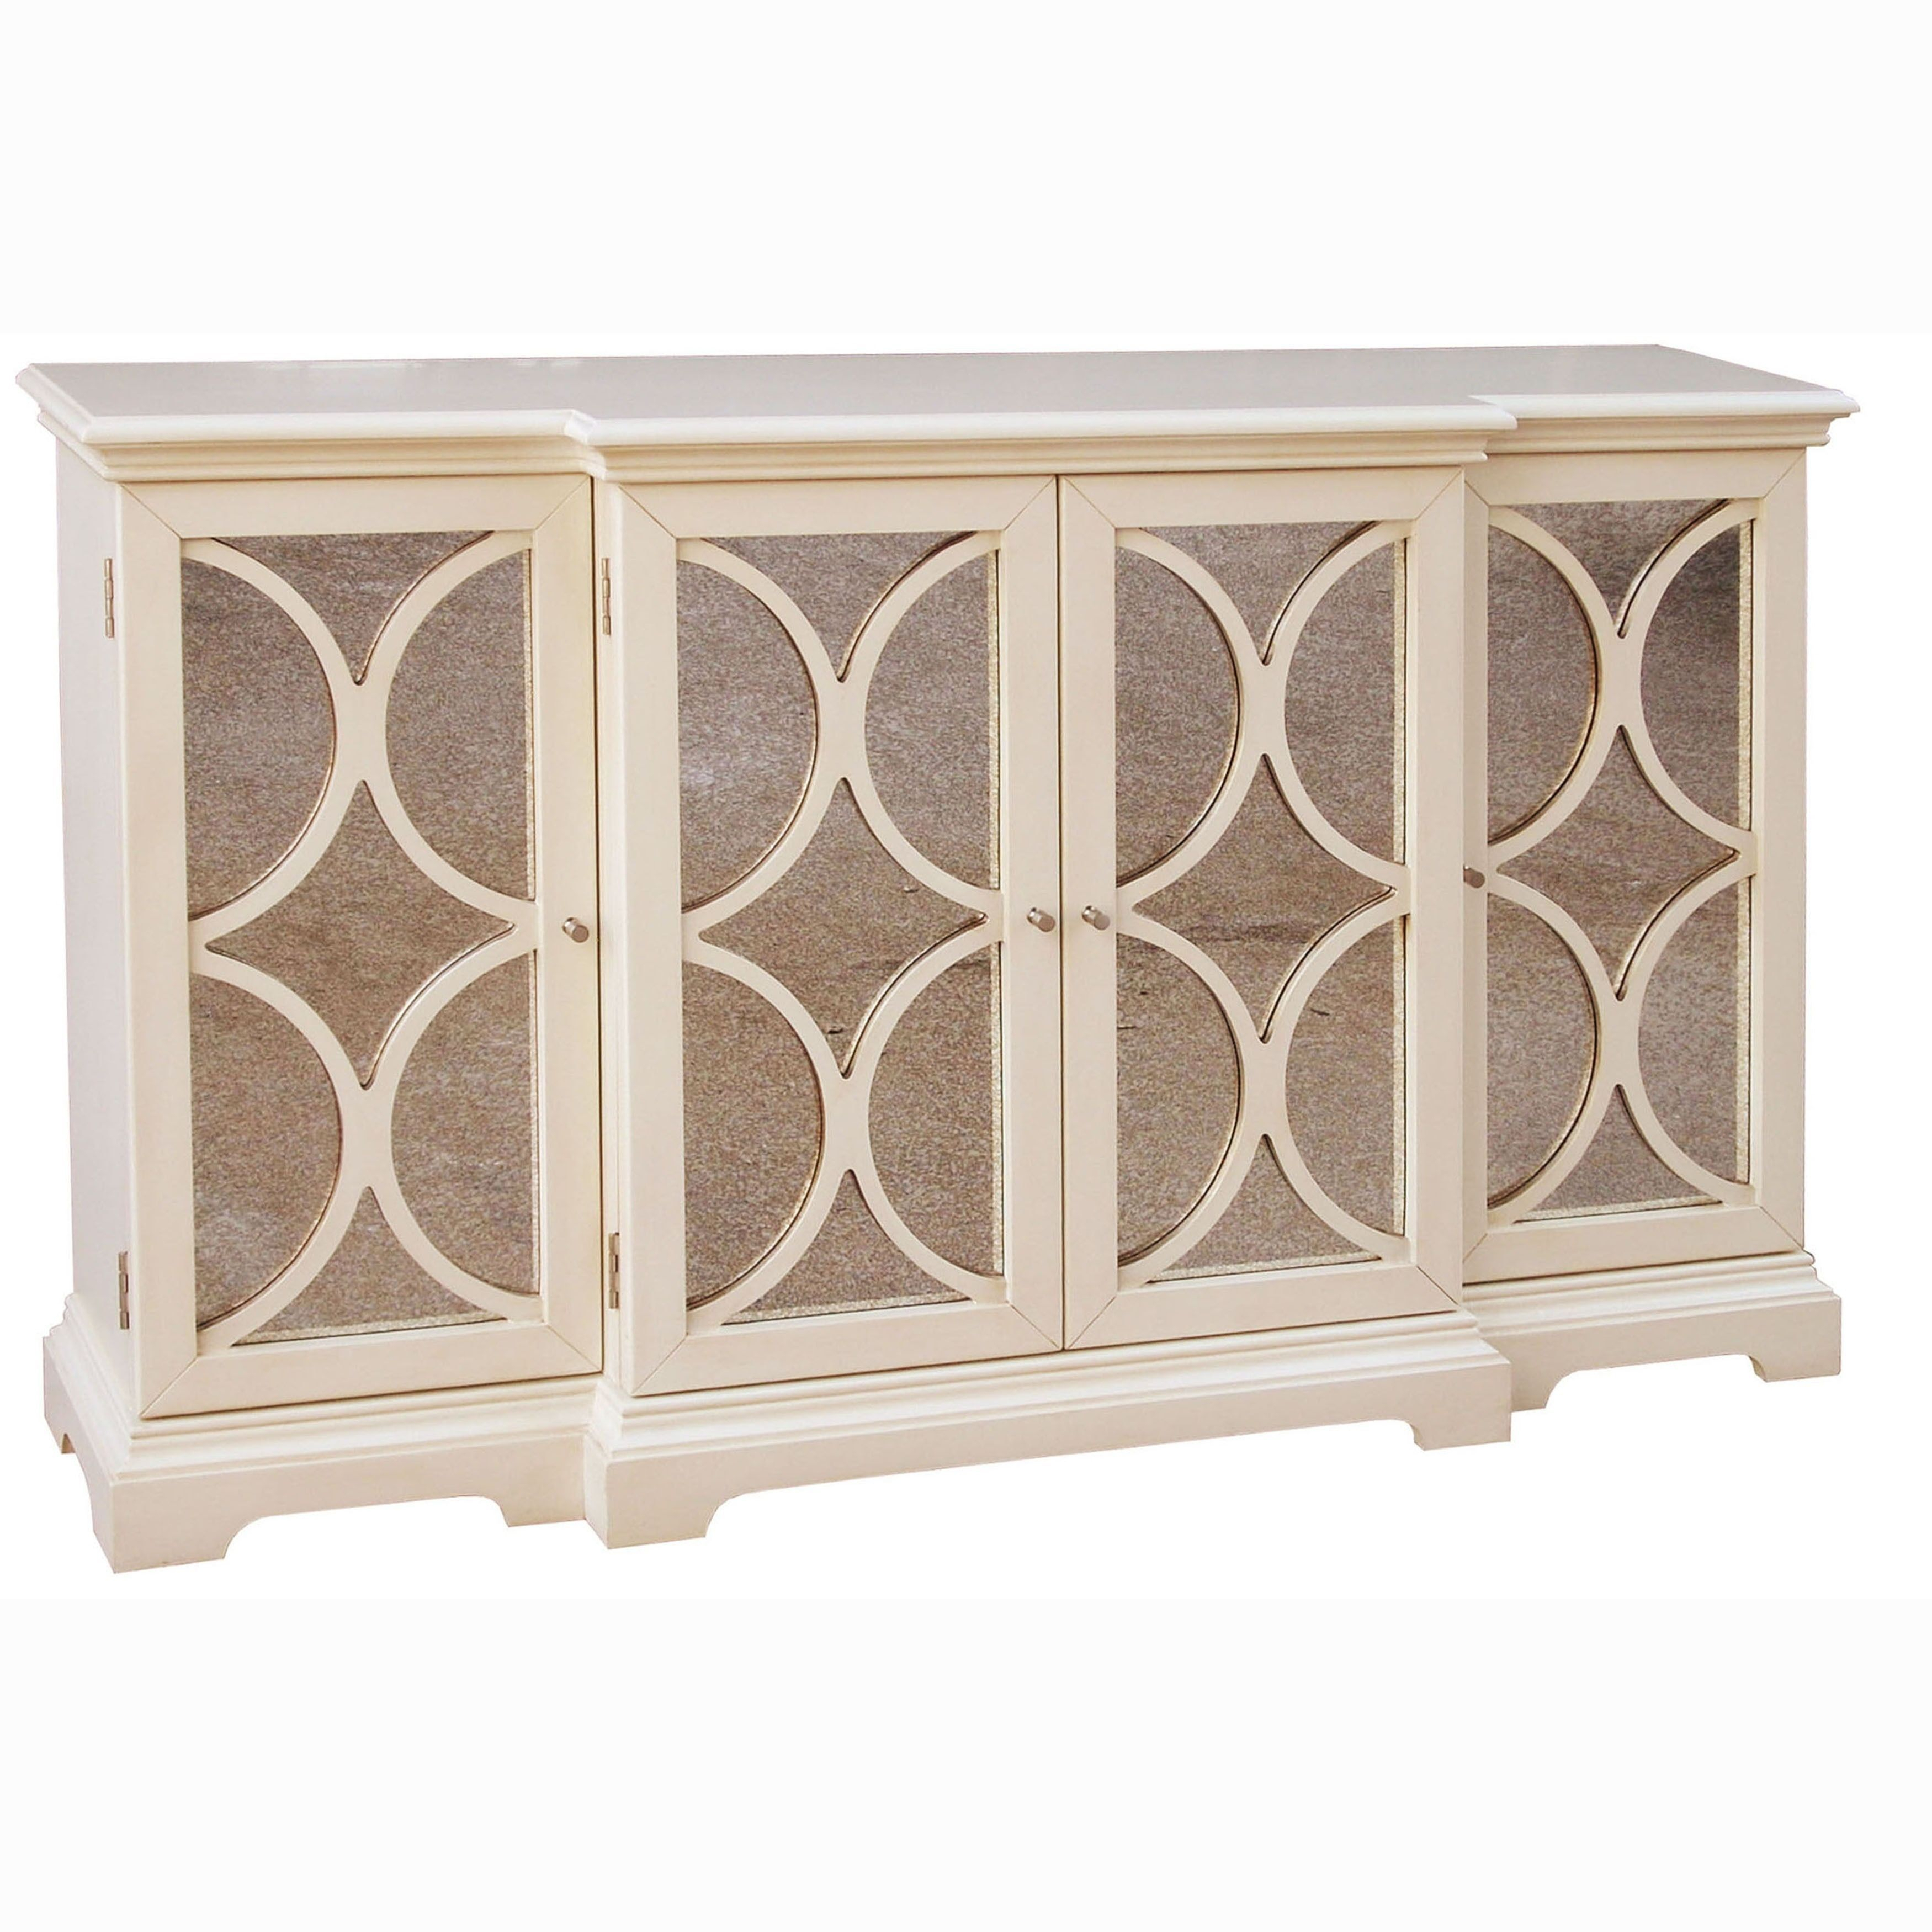 Cream Finish Antiqued Mirror Accent Chest/ Credenza, Multi Inside Elyza Credenzas (View 4 of 30)